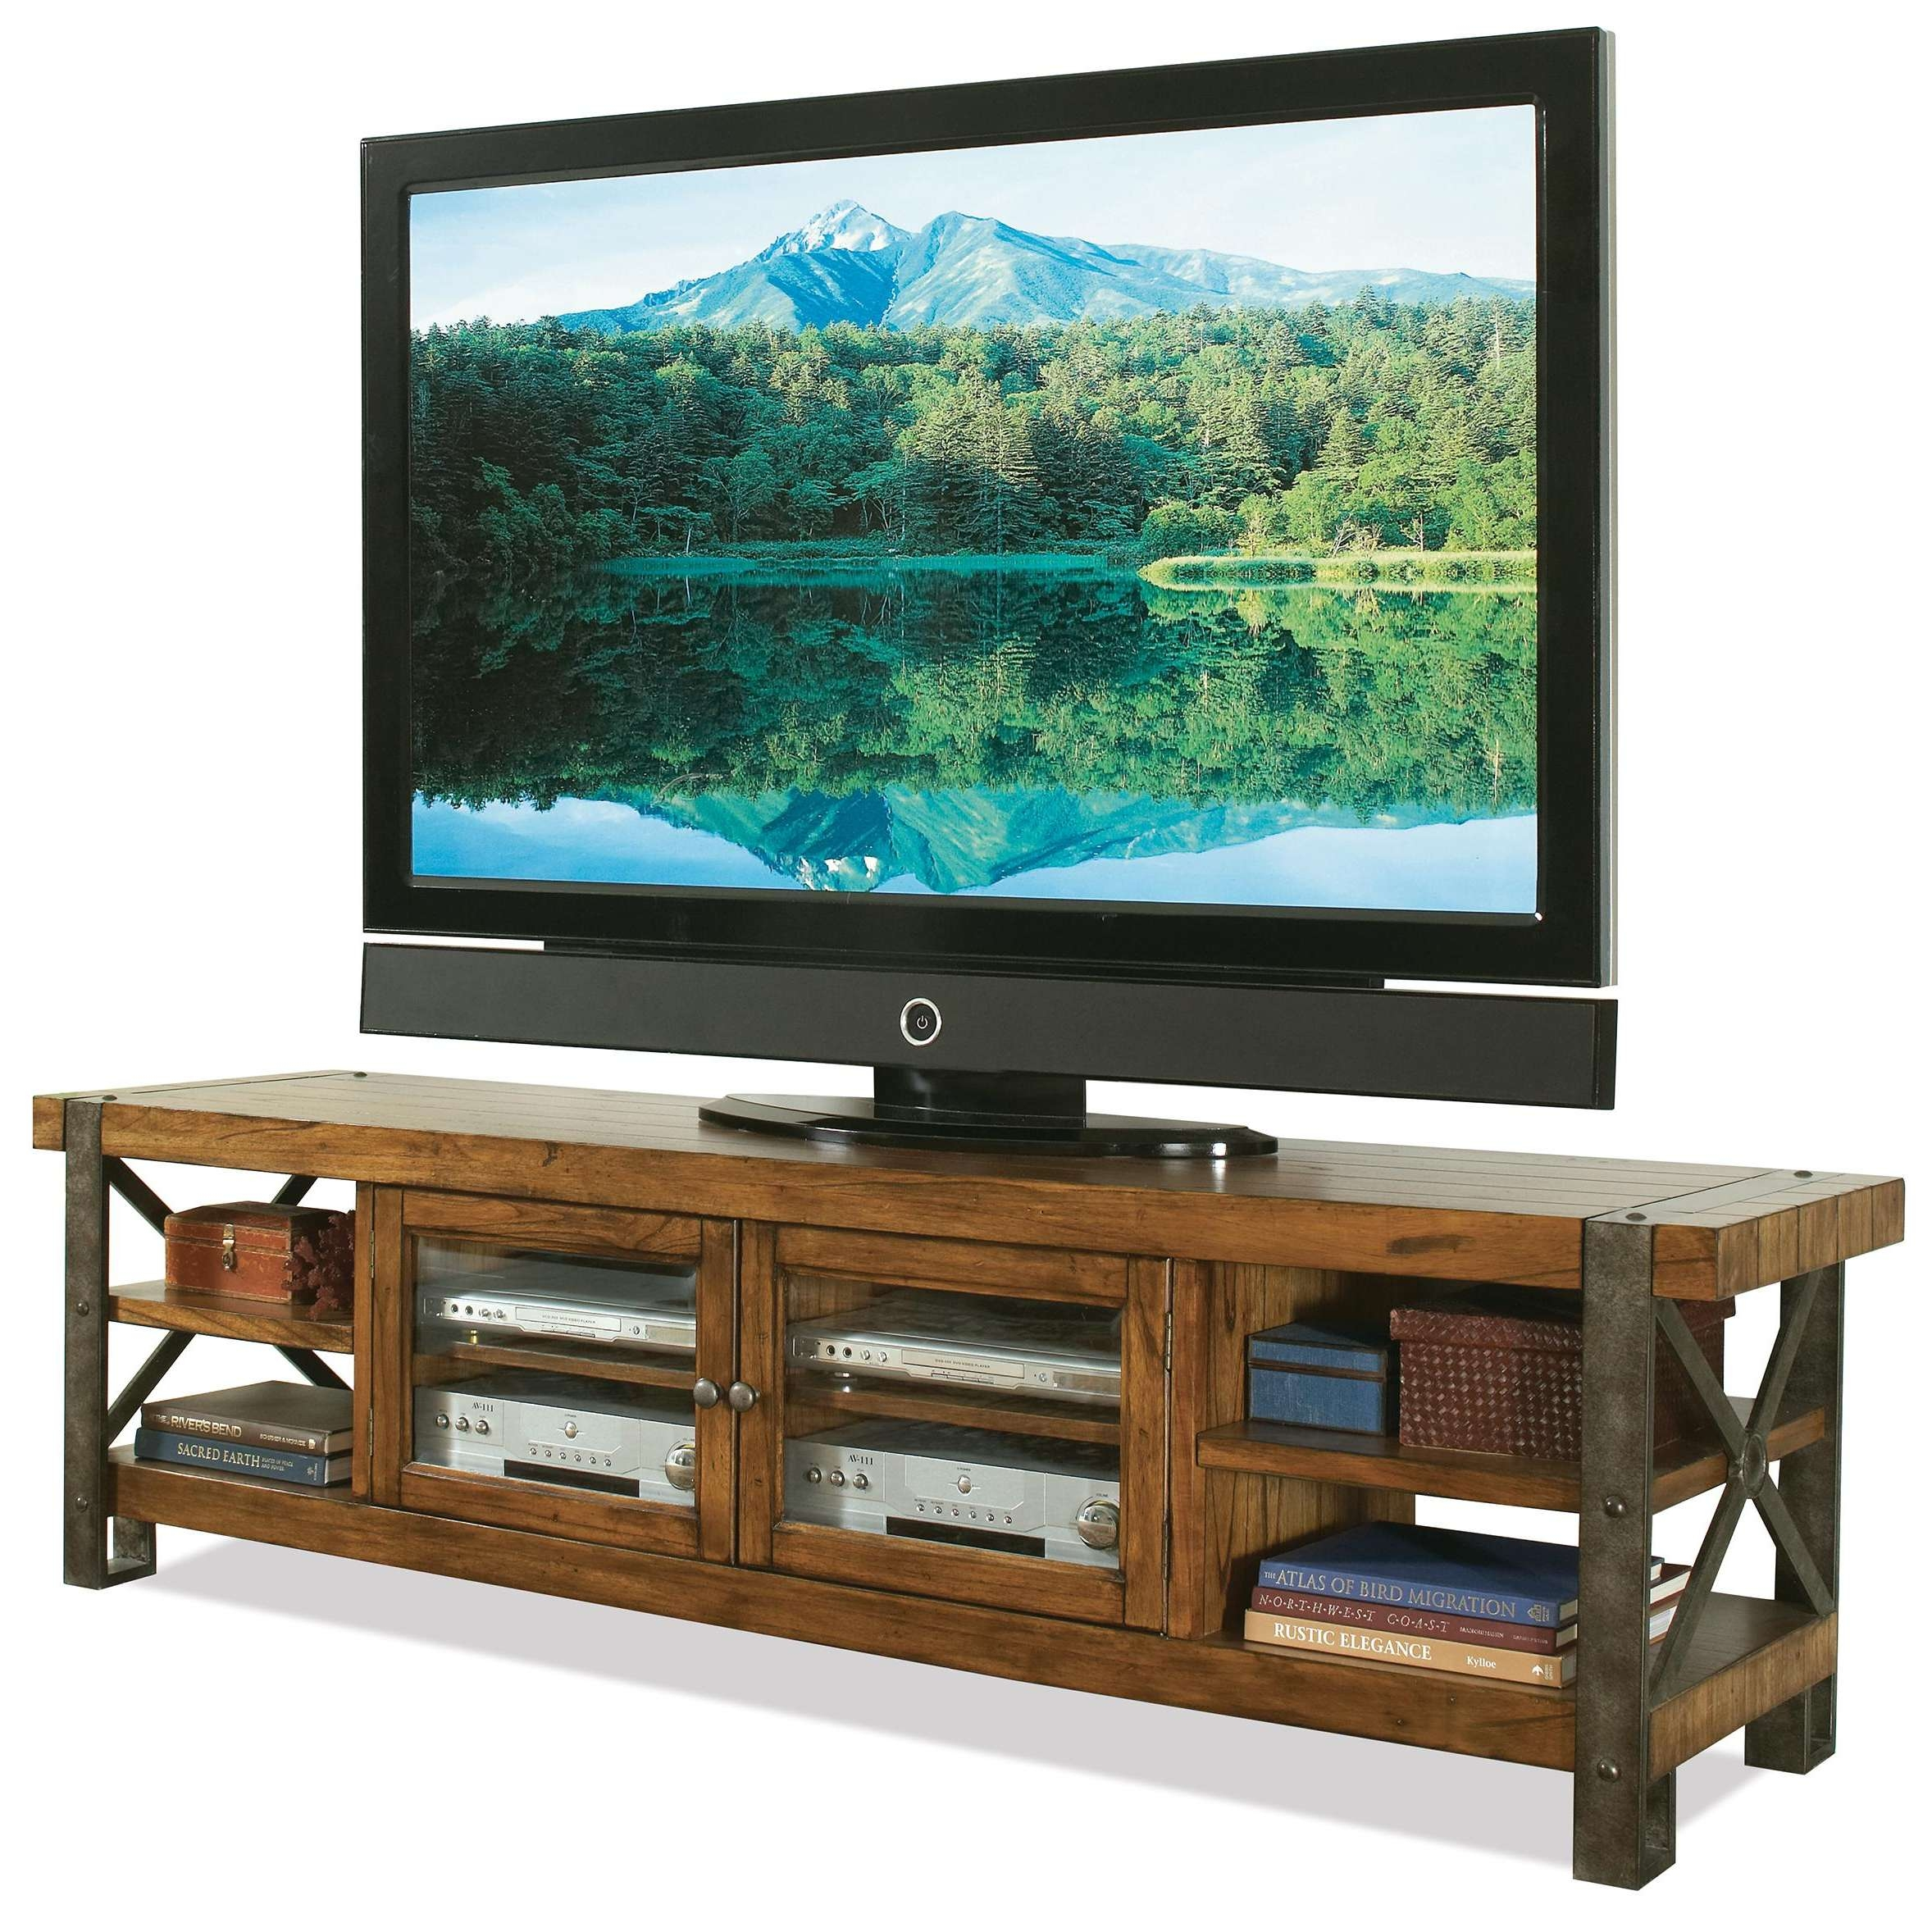 Rustic Tv Stand Console Table With Bookshelf And Storage With With Regard To Reclaimed Wood And Metal Tv Stands (View 10 of 15)